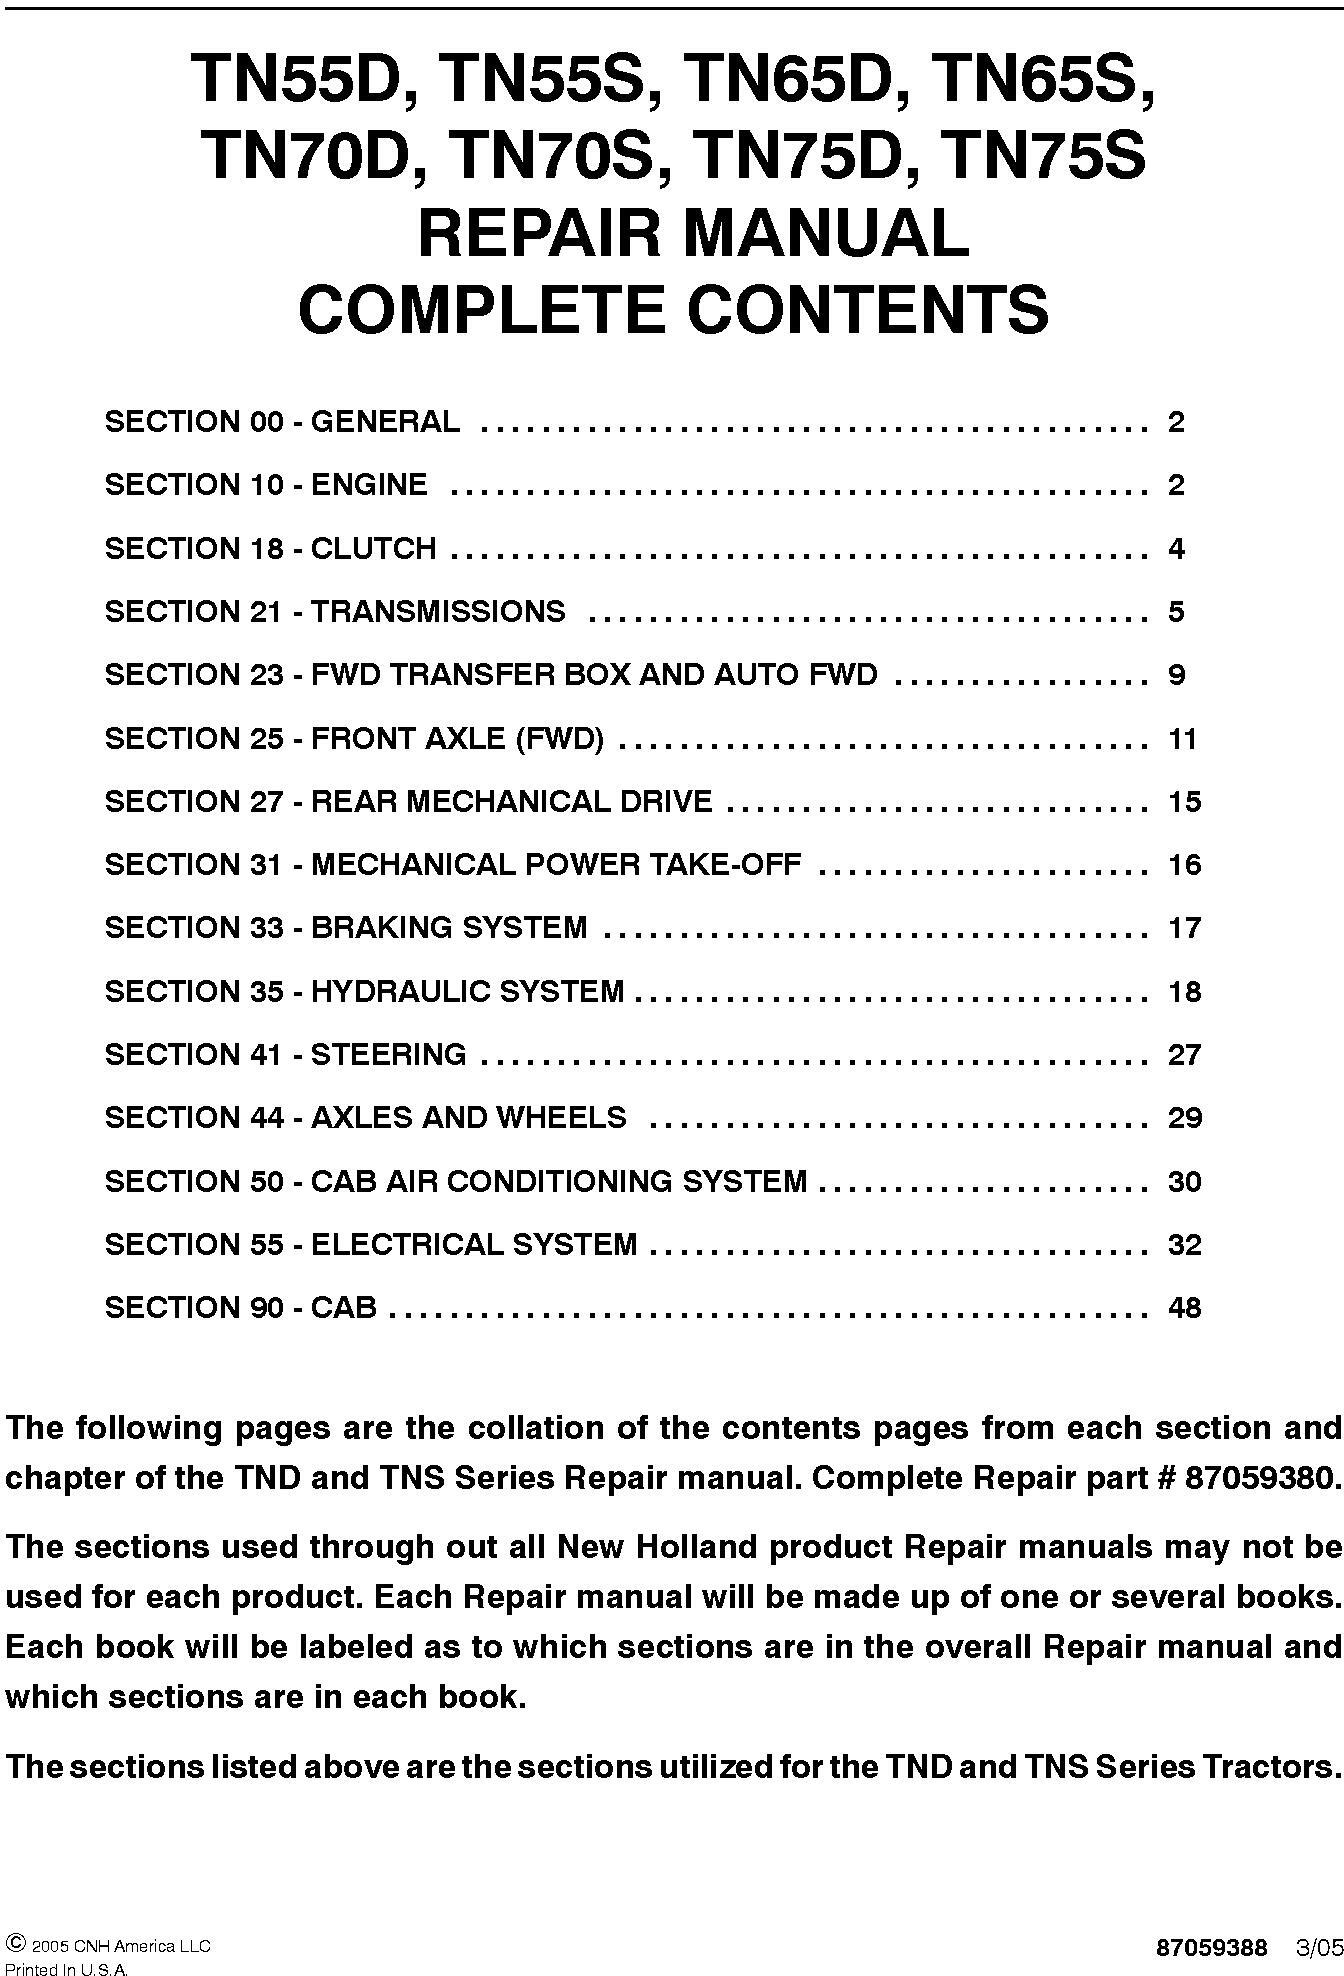 New Holland TN55D, TN65D, TN70D, TN75D, TN55S, TN65S, TN70S, TN75S Tractor Service Manual - 19608